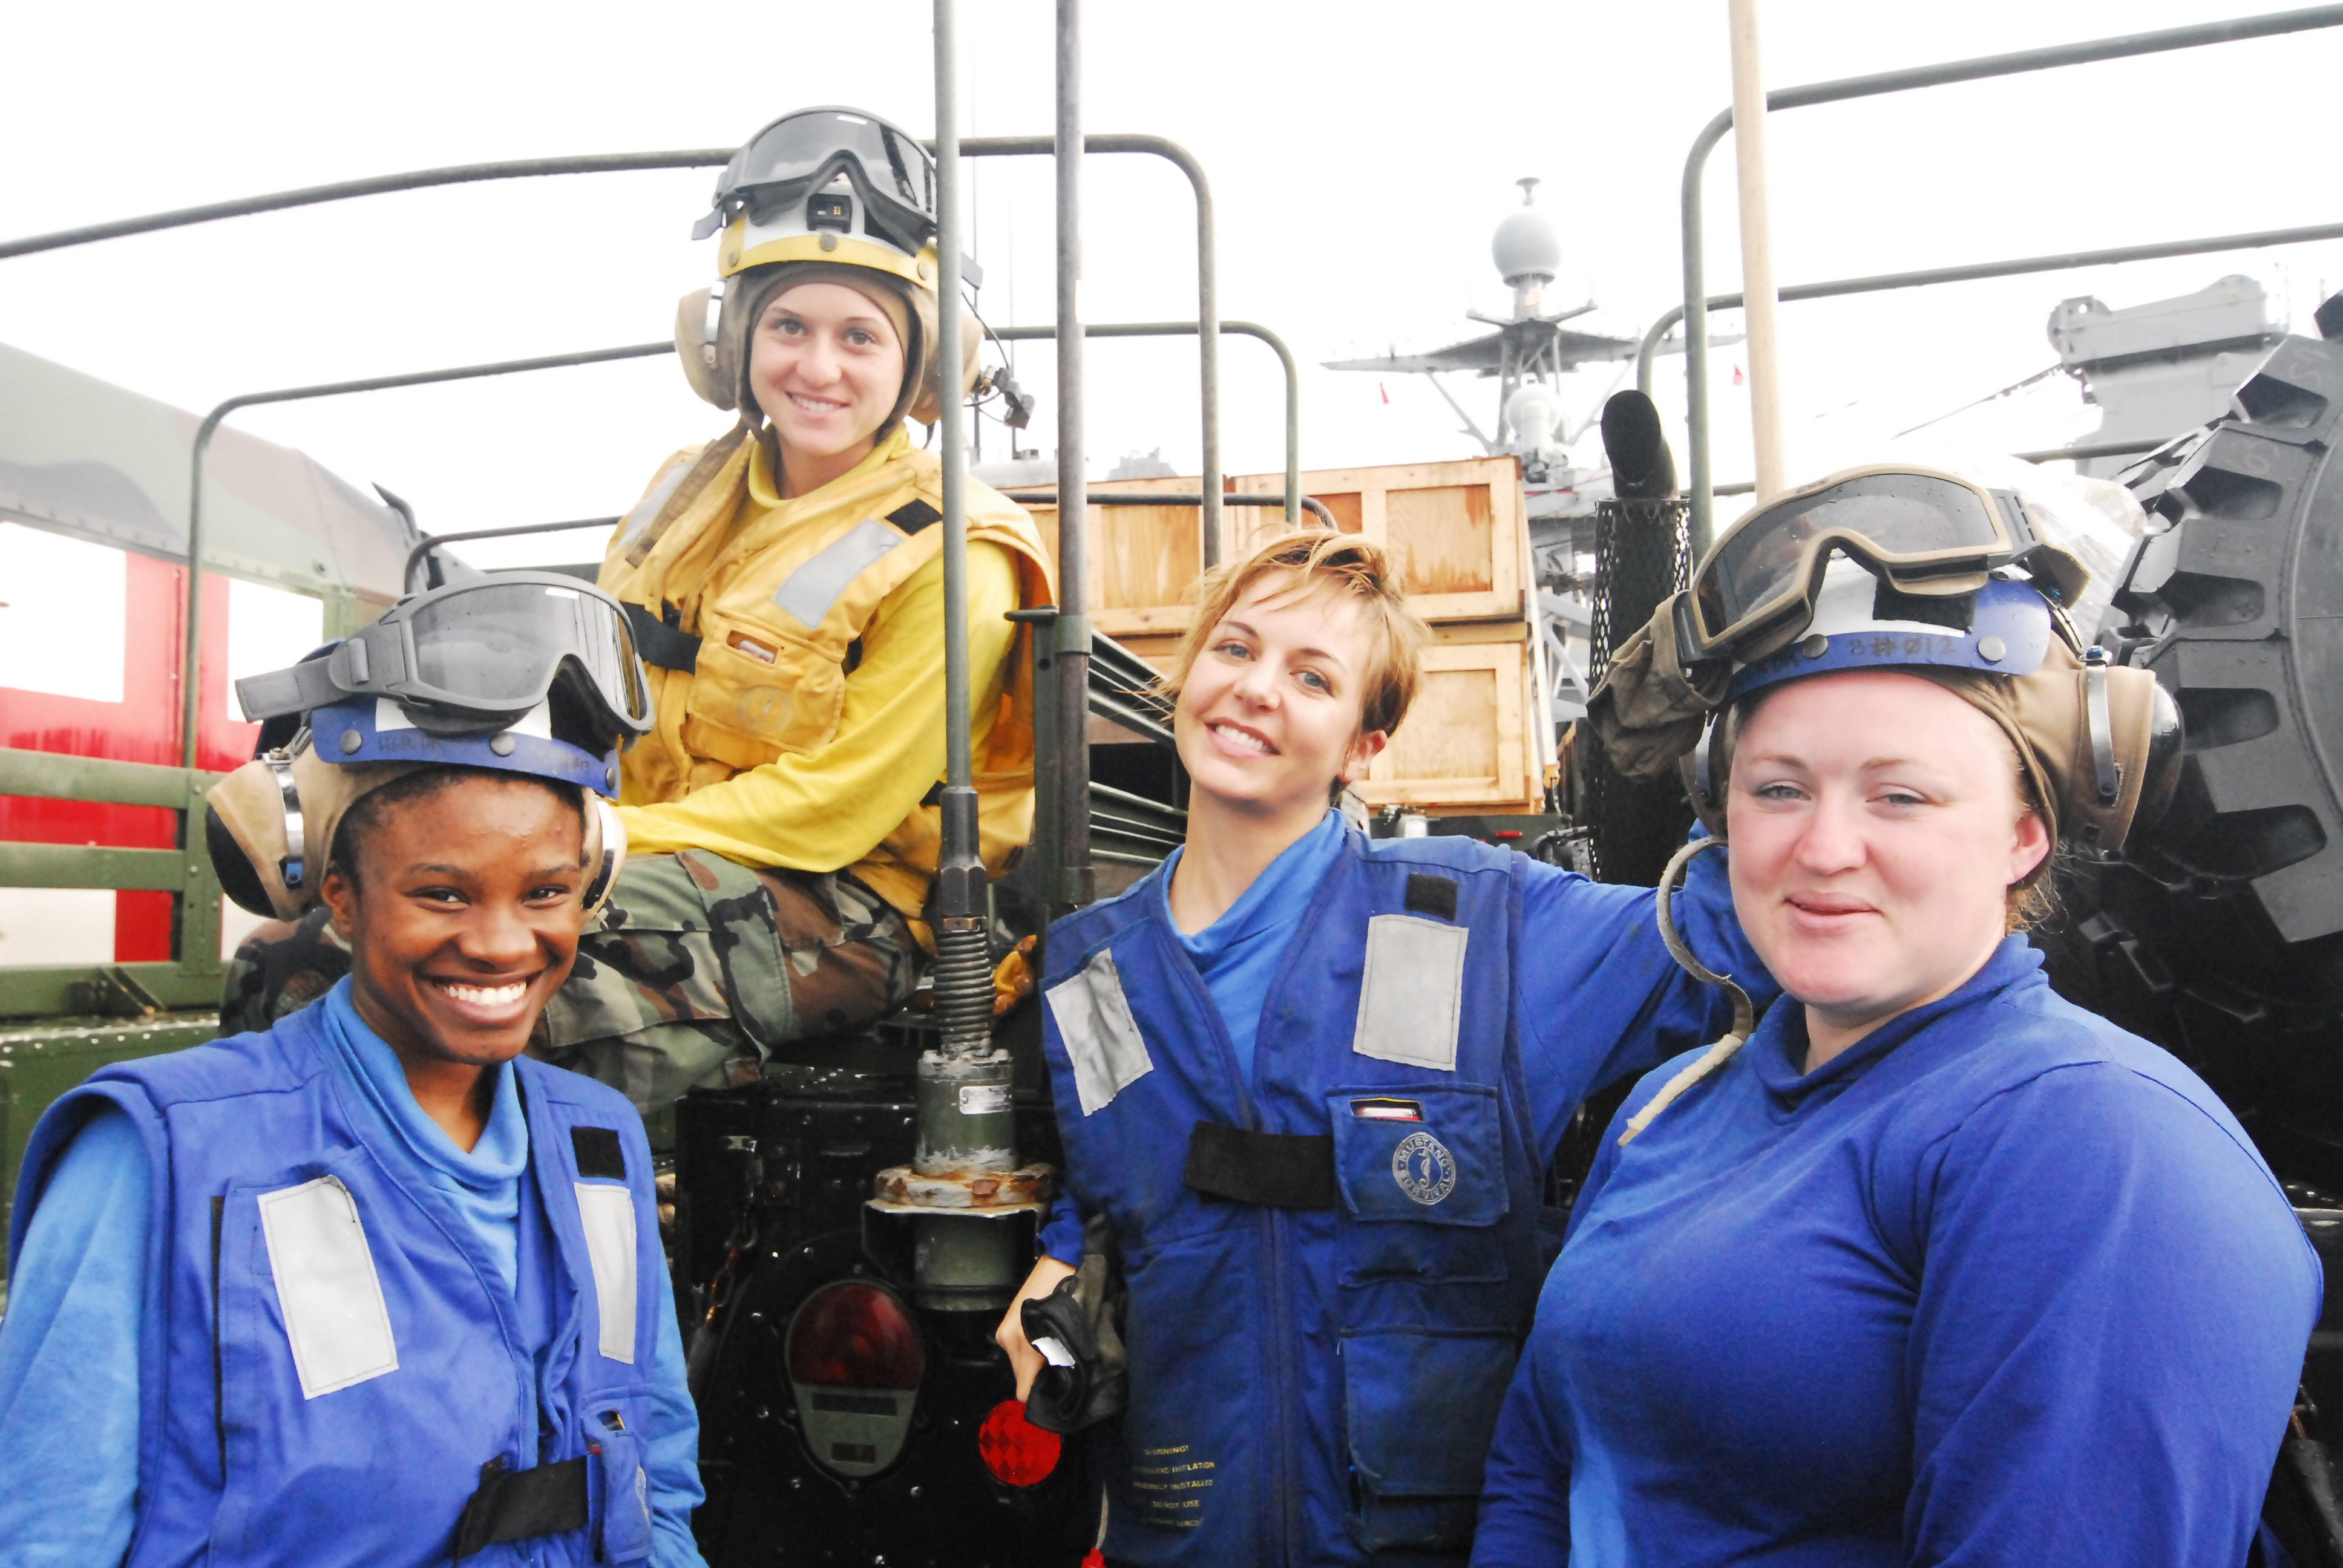 Airman Jennifer L. Confer, top, with members of her Flight Deck Crew between air operations aboard the USS Ashland.